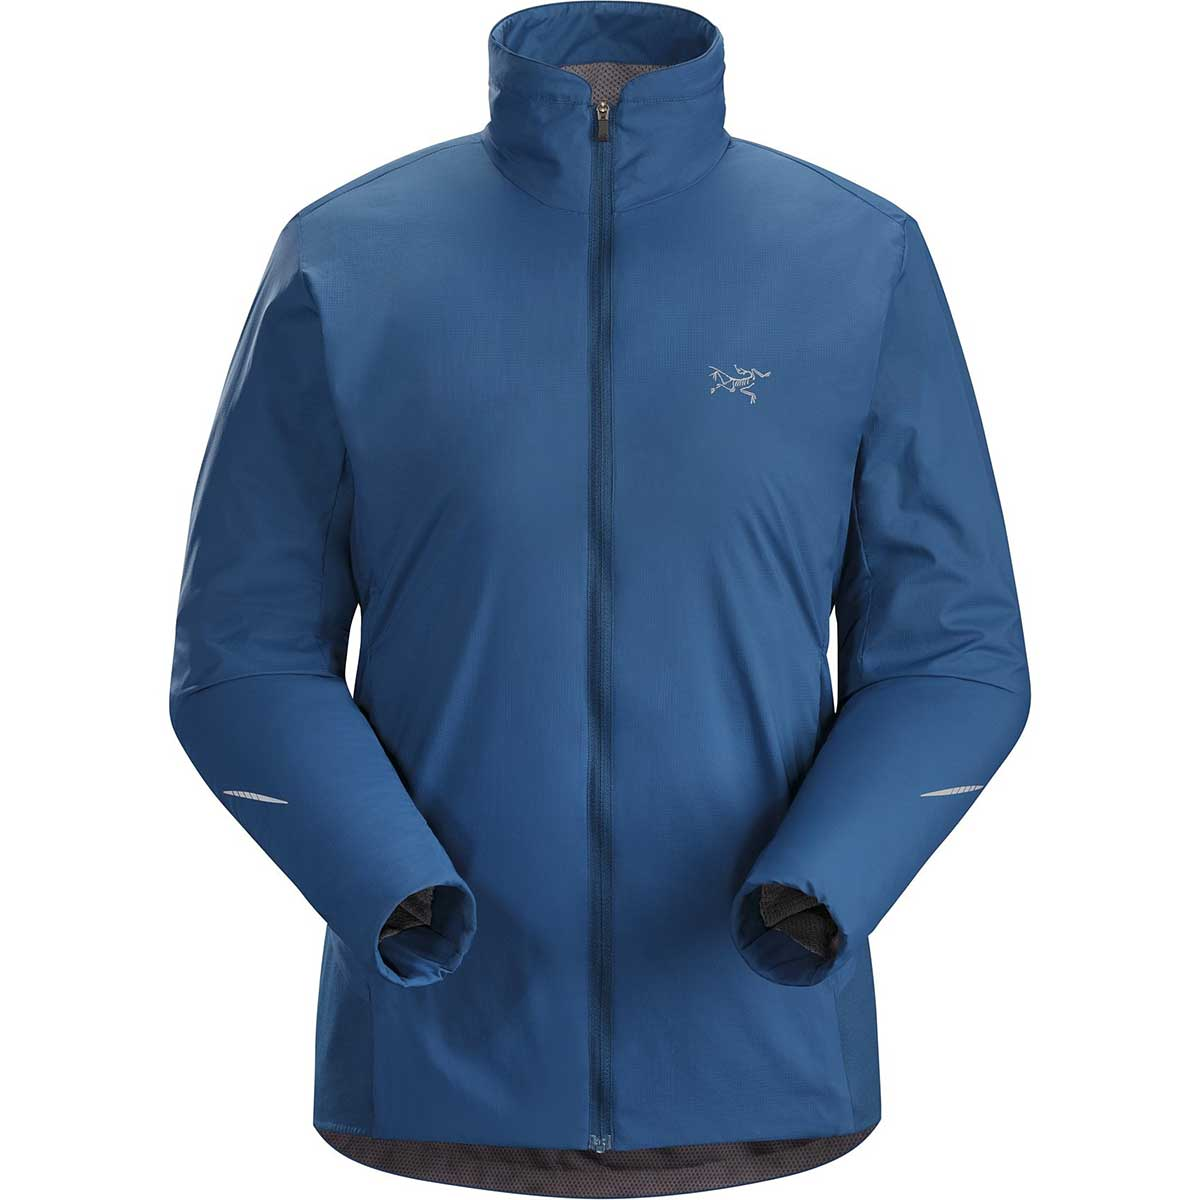 Arcteryx women's Gaea Jacket in Odyssea front view